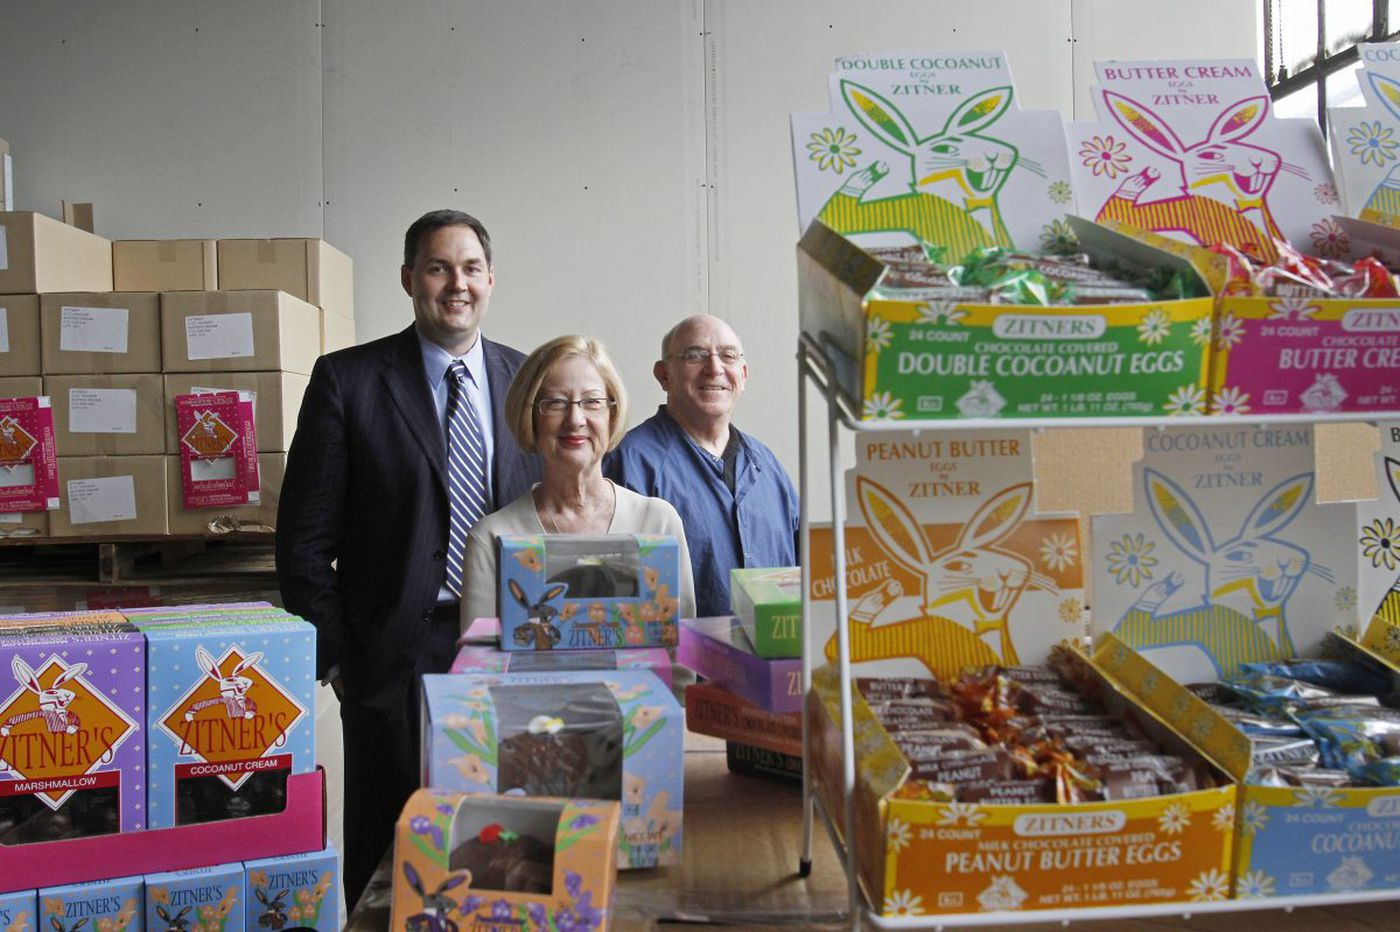 Zitner Candy files for bankruptcy to restructure debt